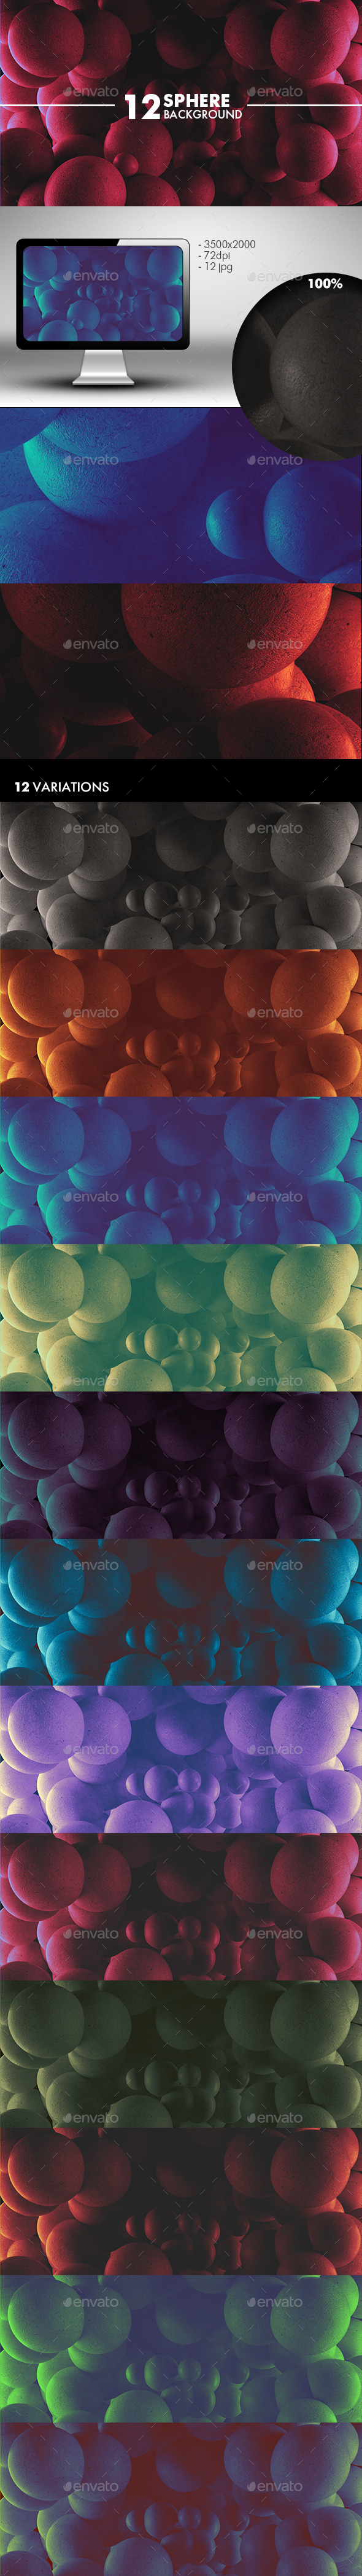 GraphicRiver Sphere Background 10895554